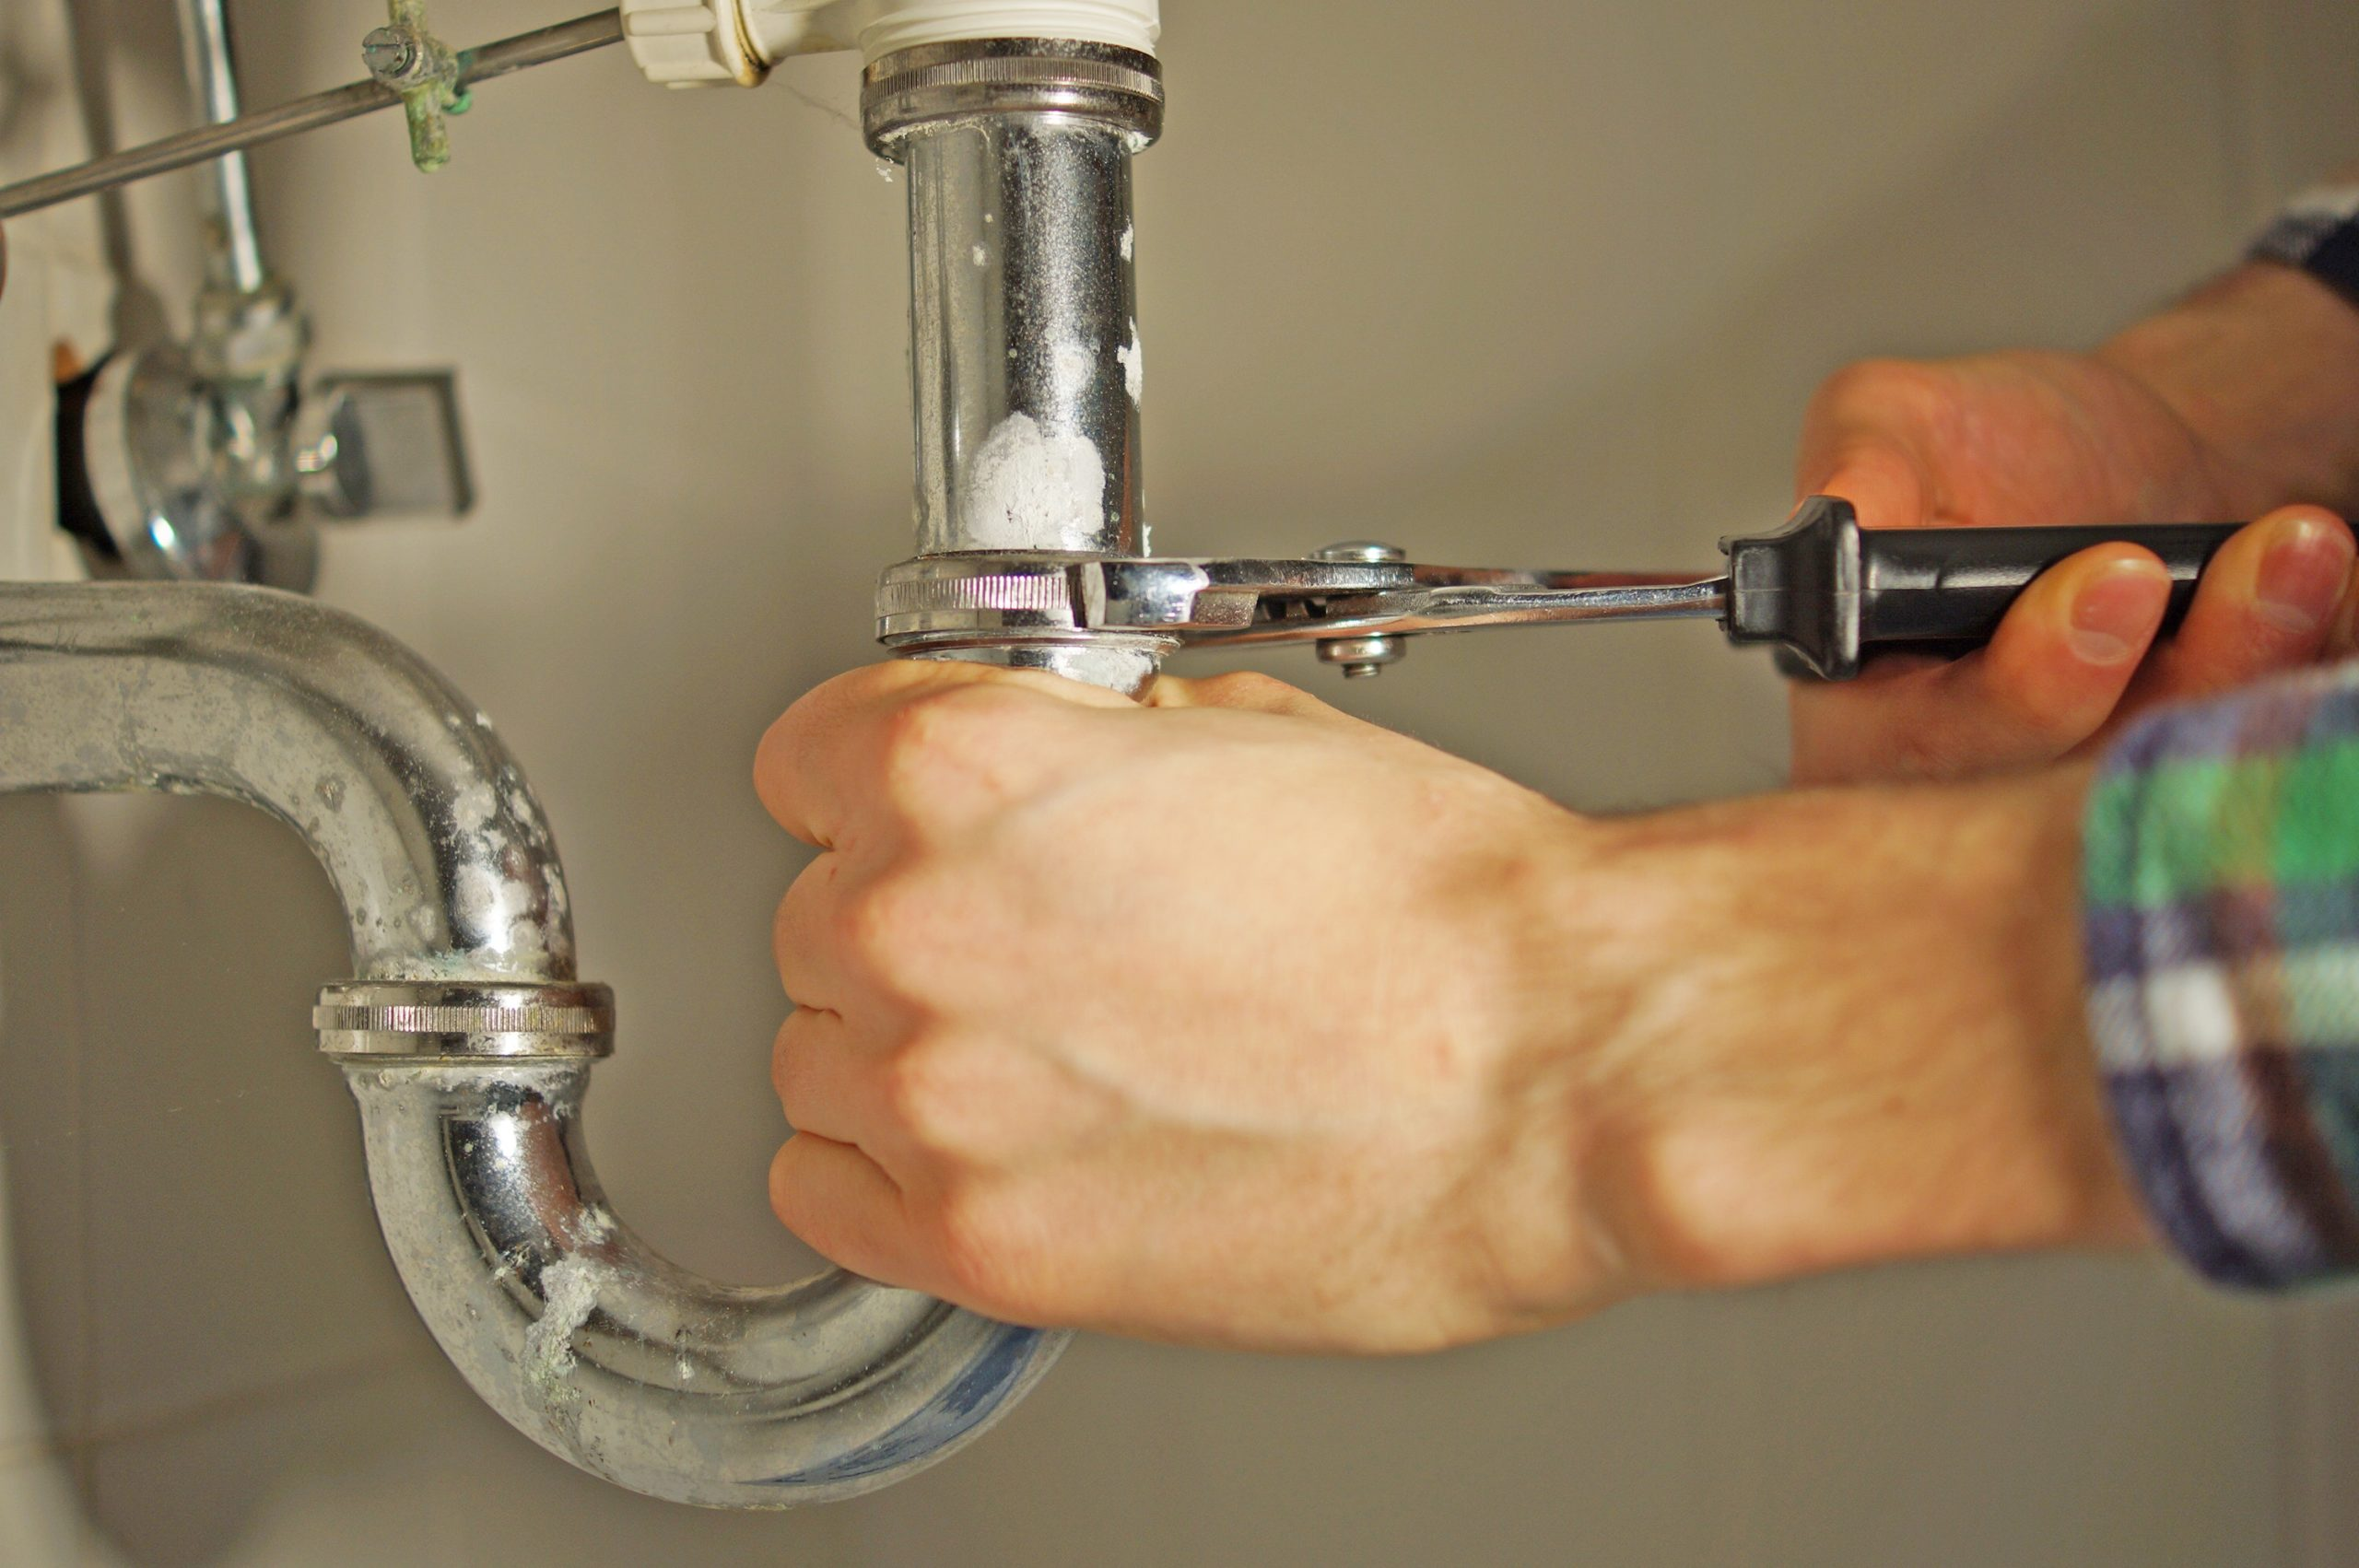 How to Avoid Plumbing Disasters in Your Airbnb – Q&A with a Plumbing Pro